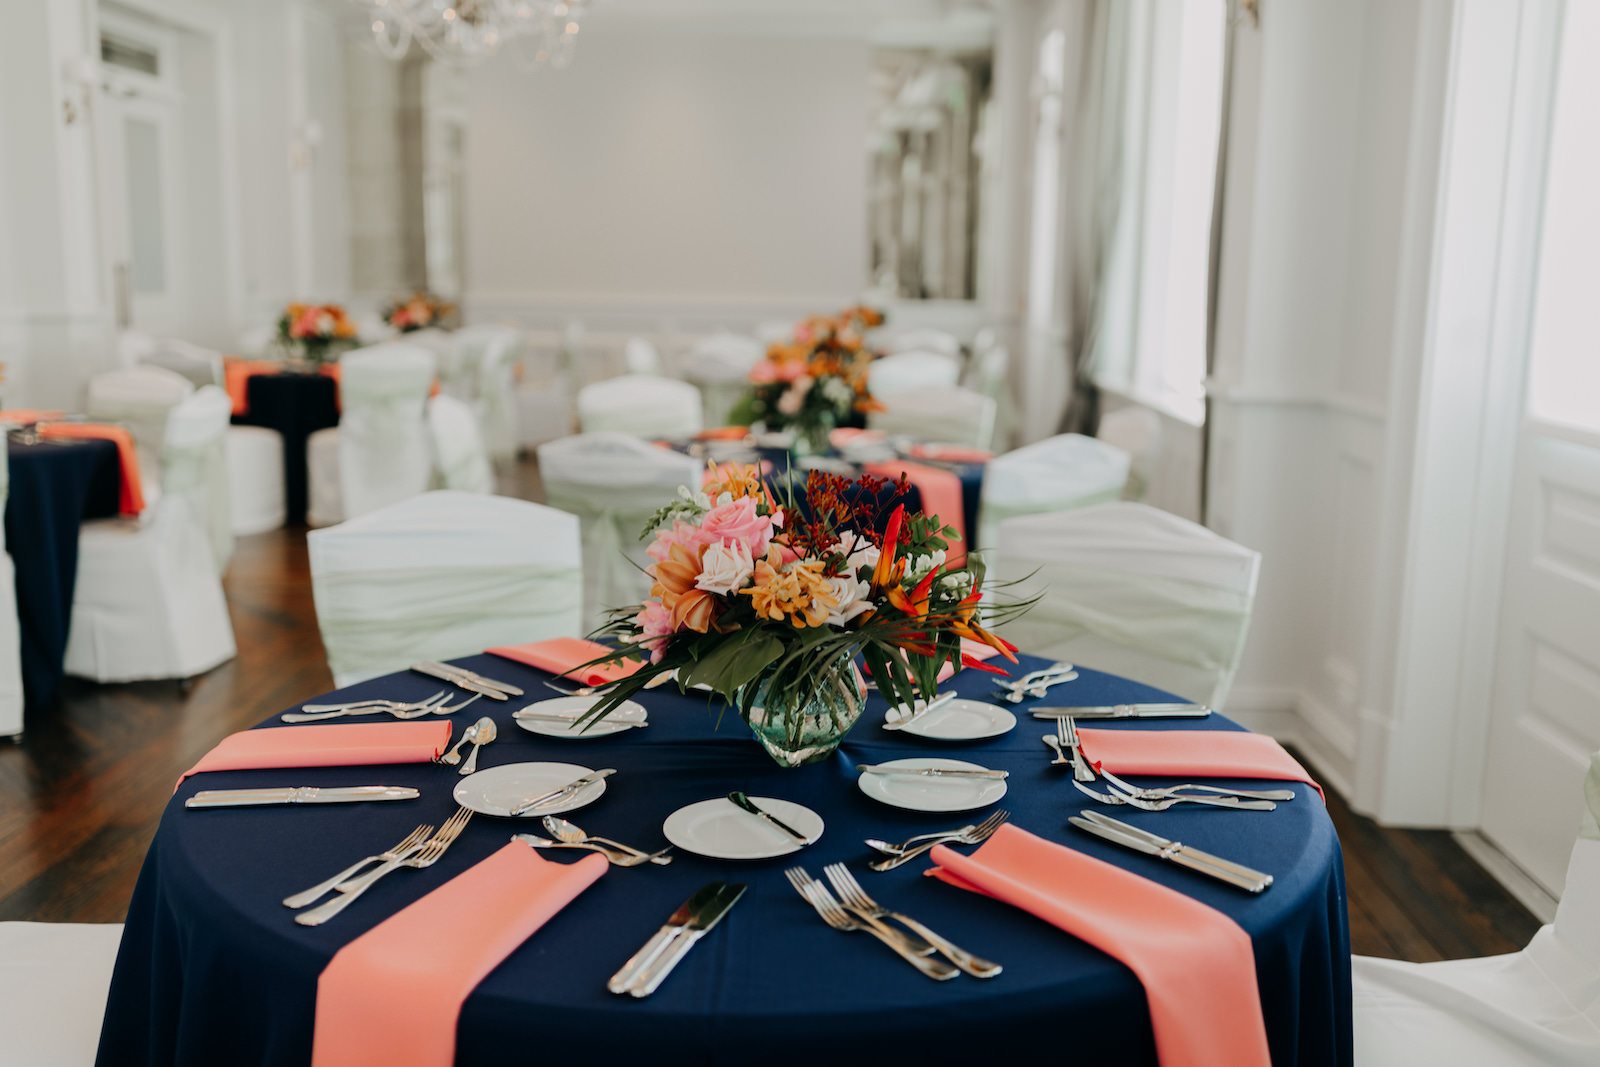 Indoor Clearwater Wedding Reception at Historic Venue Hotel   Navy Blue Reception Table with Coral Peach Pink Napkins and Tropical Floral Arrangement Centerpieces